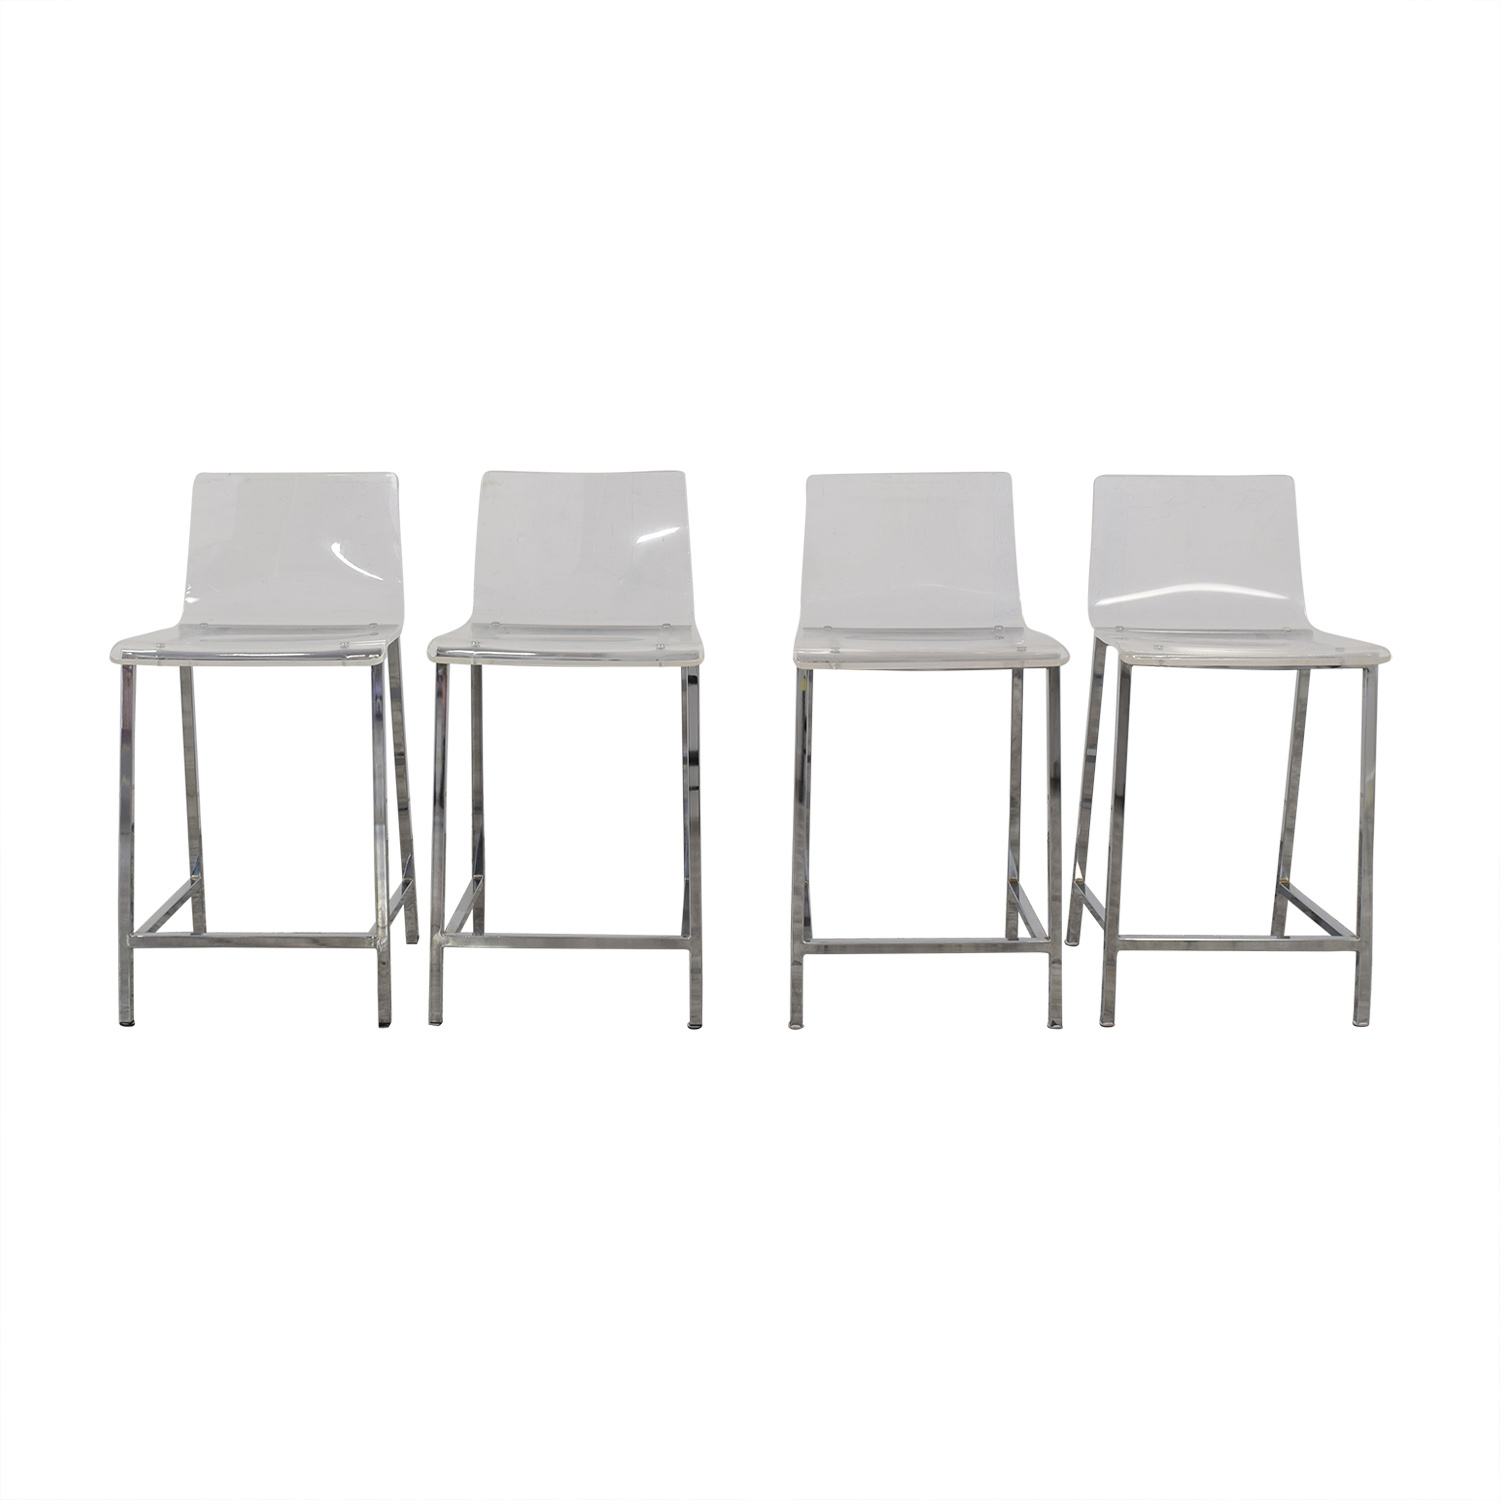 CB2 Chiaro Clear Counter Stool / Chairs